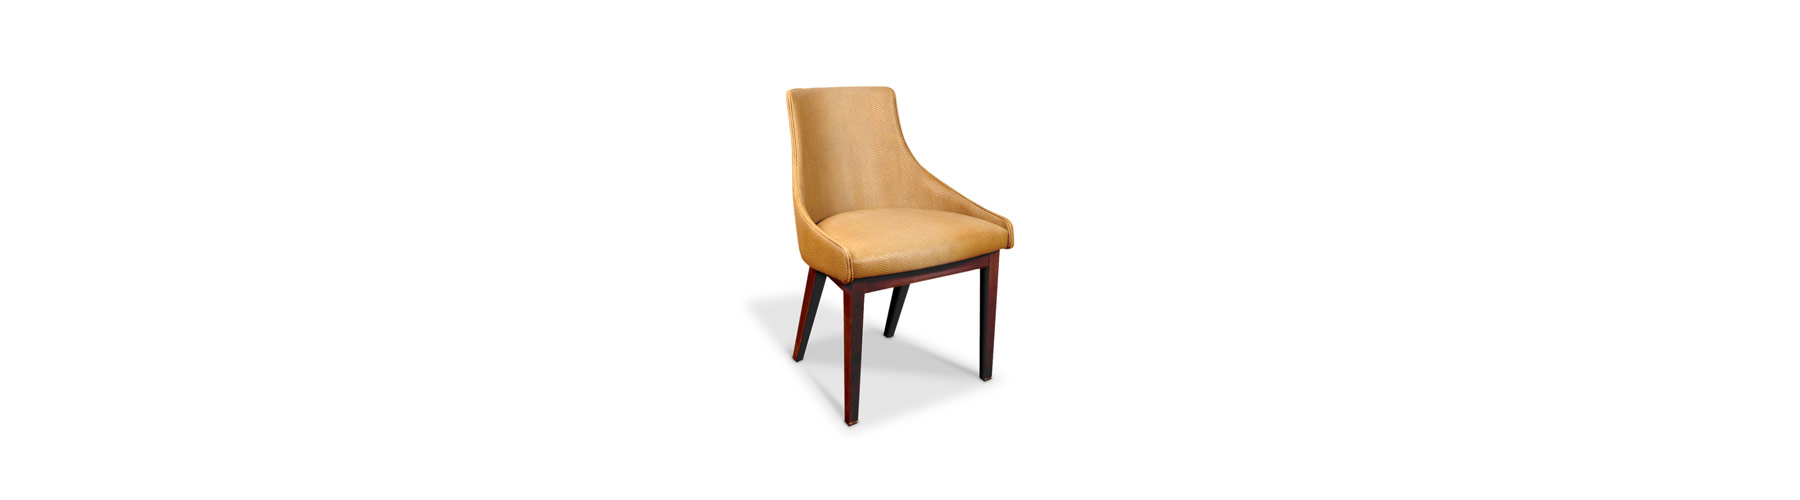 Kristy - Chaise William